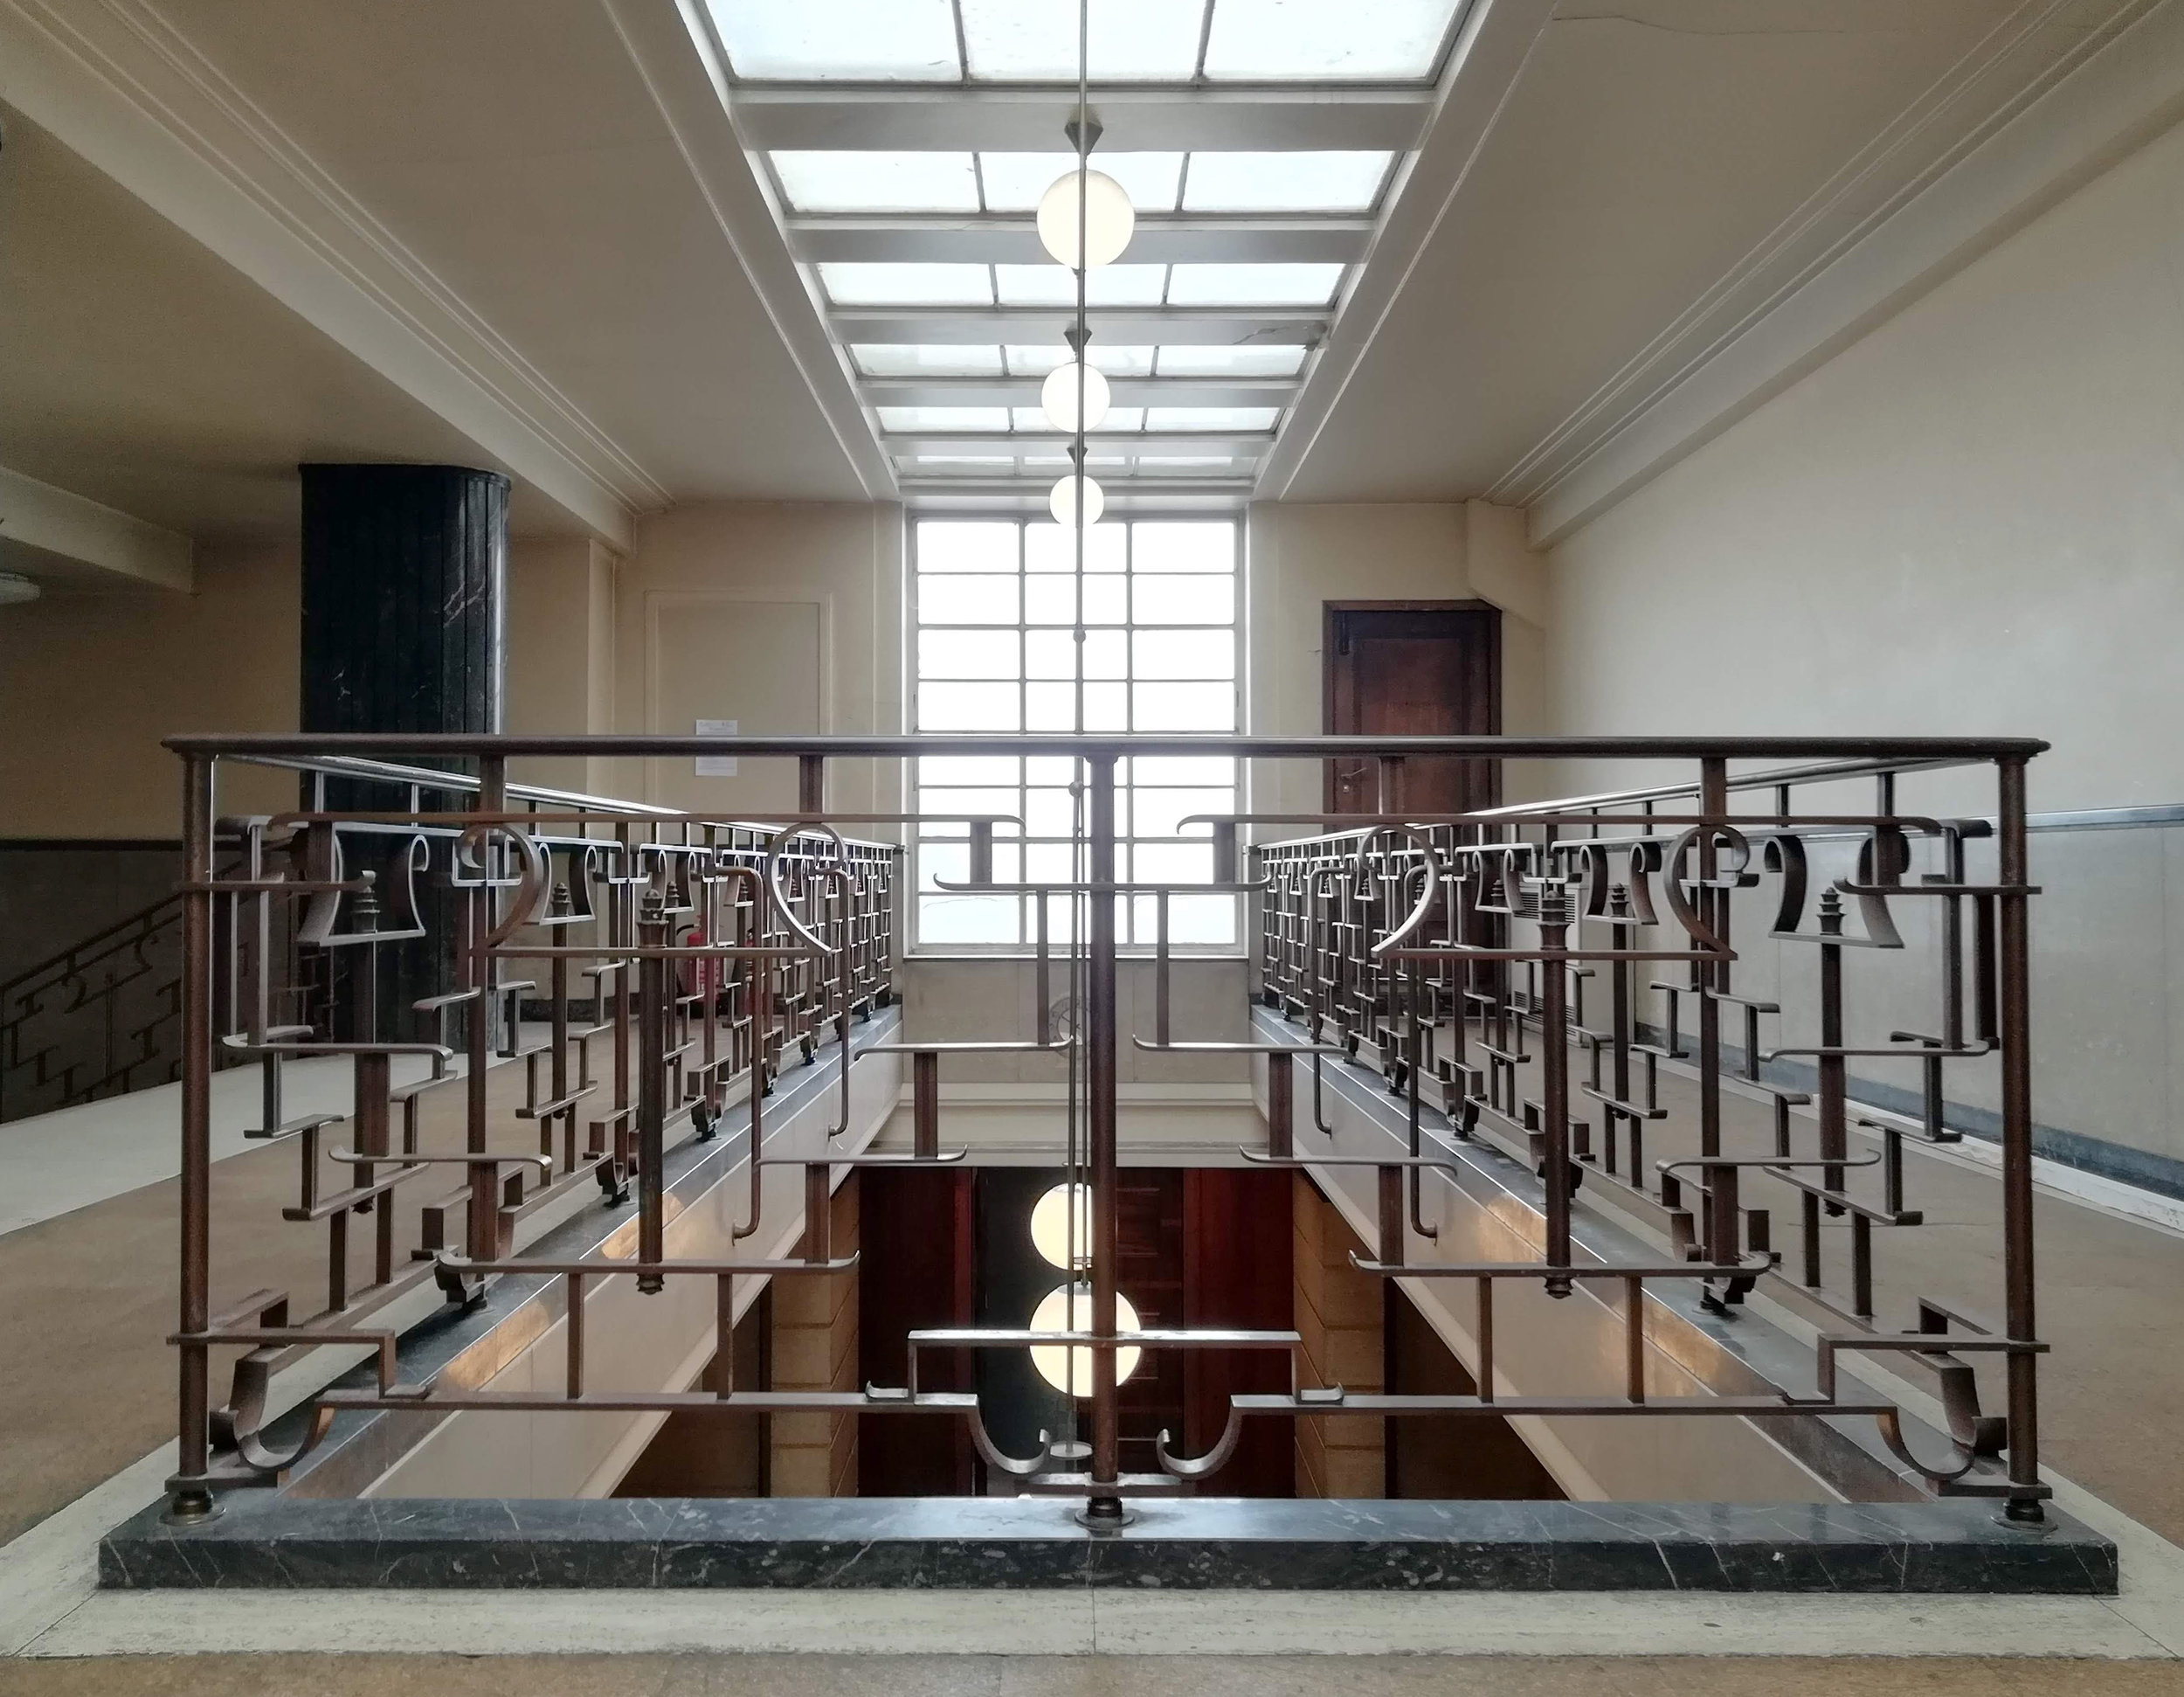 Art deco balustrade in Hornsey Town Hall.